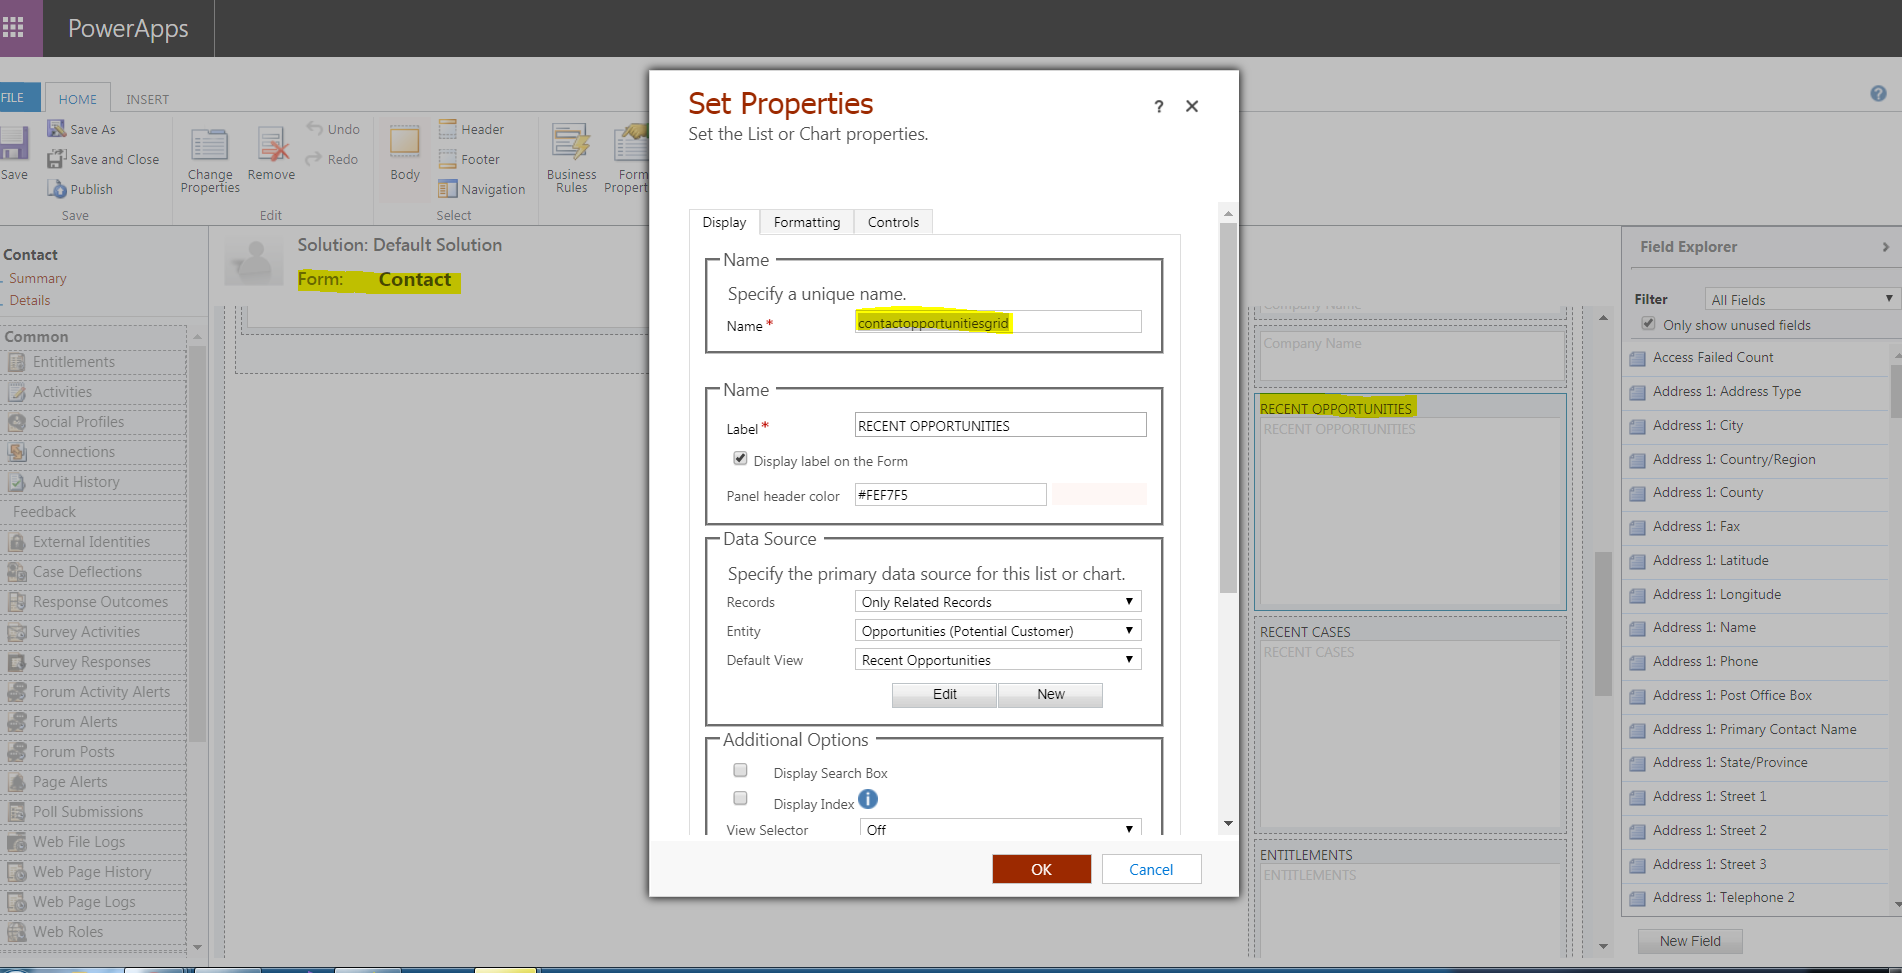 How get subgrid name - Microsoft Dynamics CRM Forum